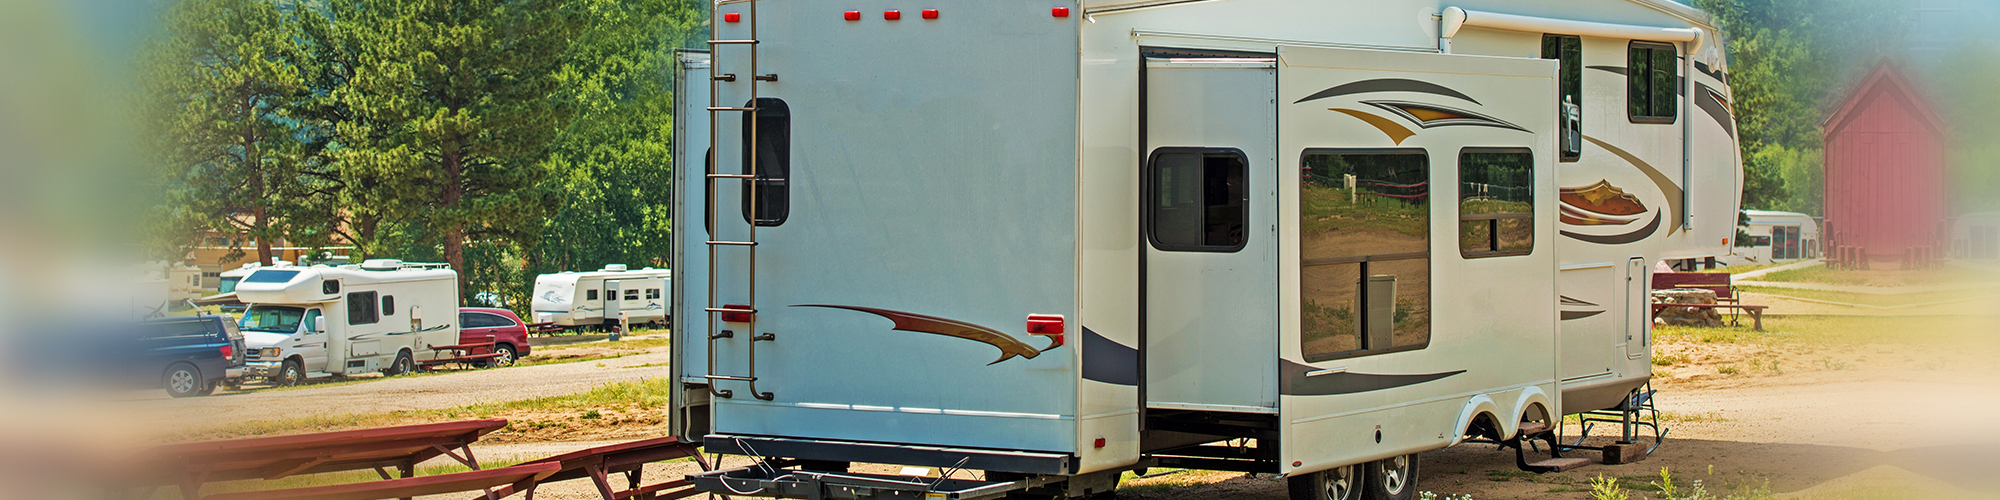 Affordable RV Camping, Gated Facility, Saltwater Pool, Full